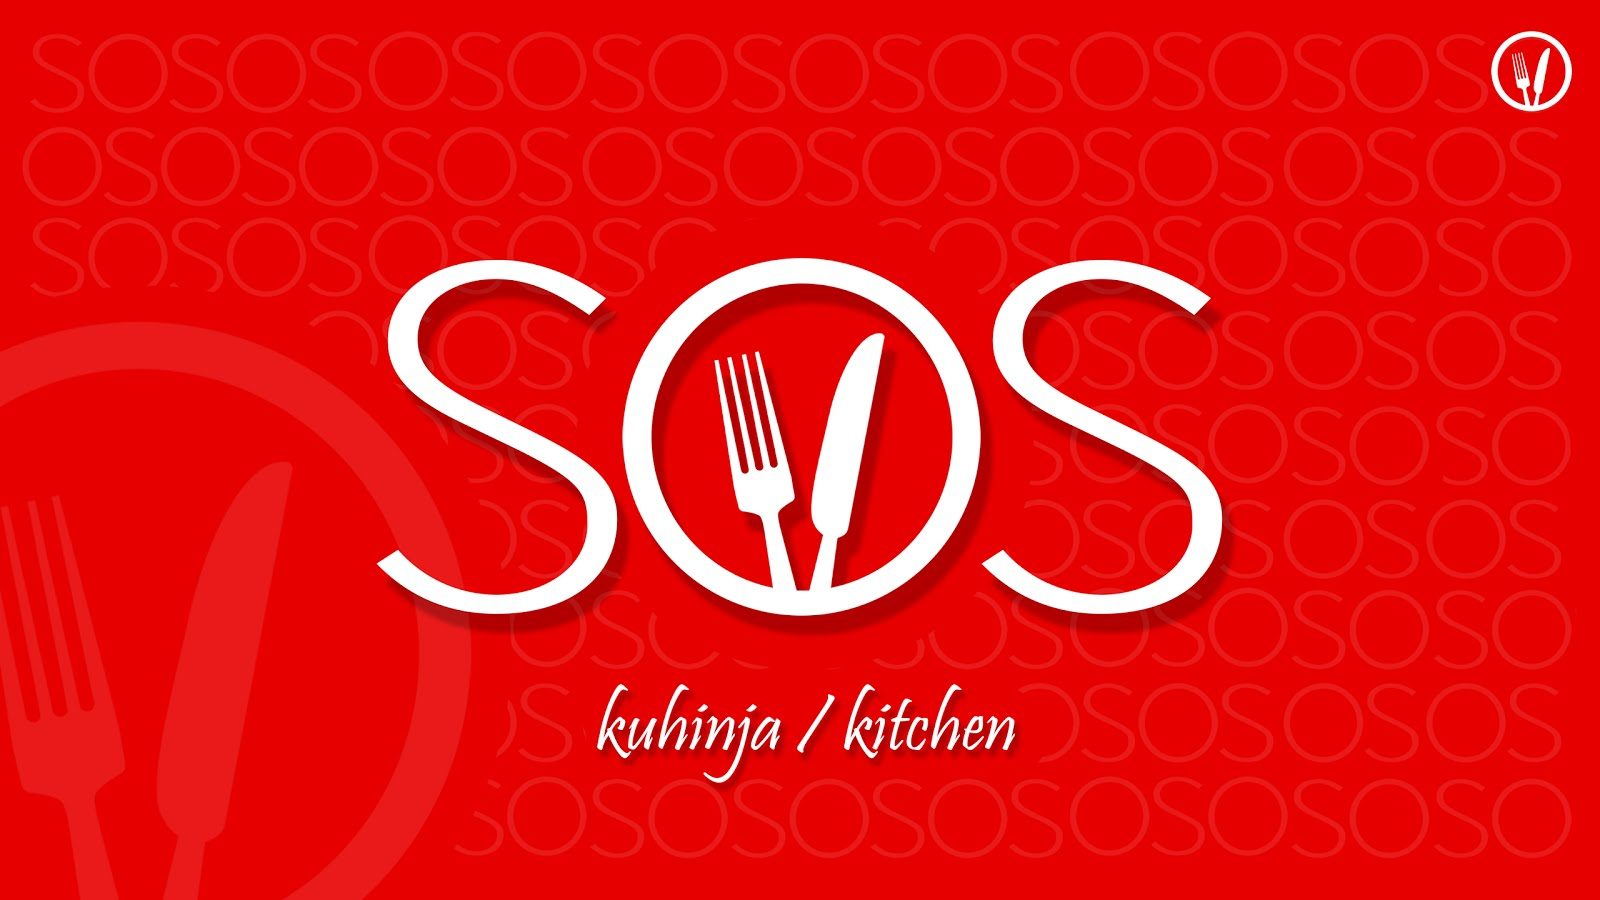 SOS Kuhinja/Kitchen